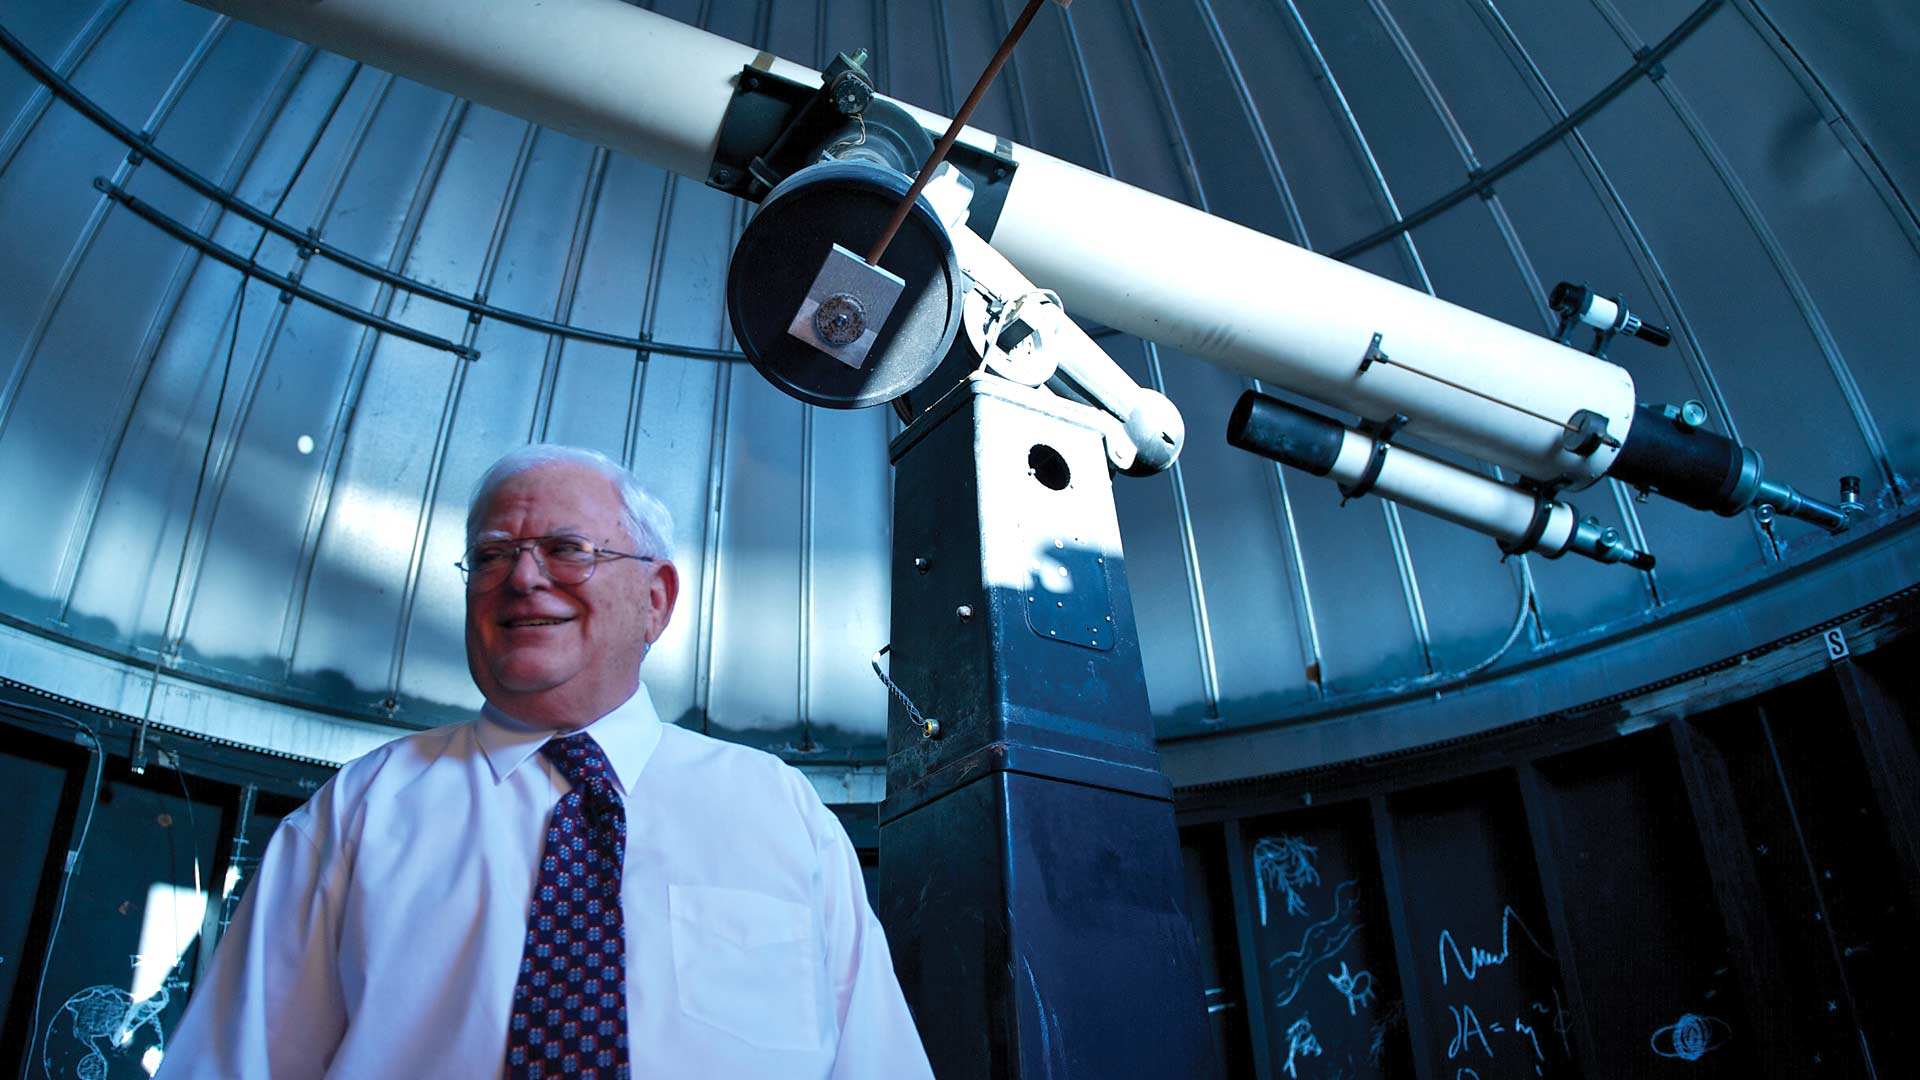 Professor In Astronomy Observatory at University of Miami